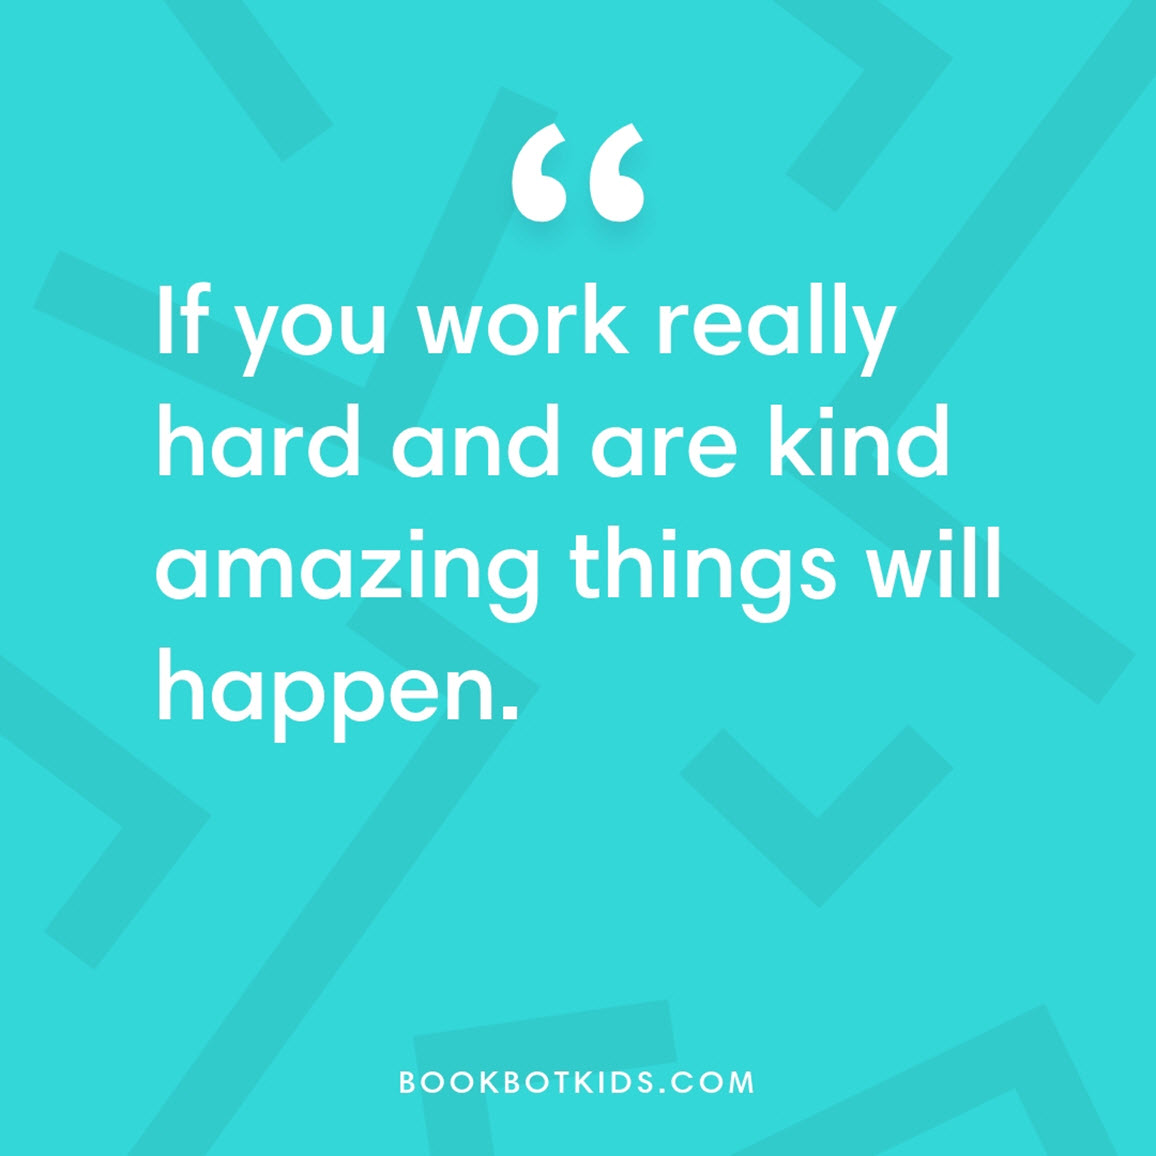 If you work really hard and are kind amazing things will happen.